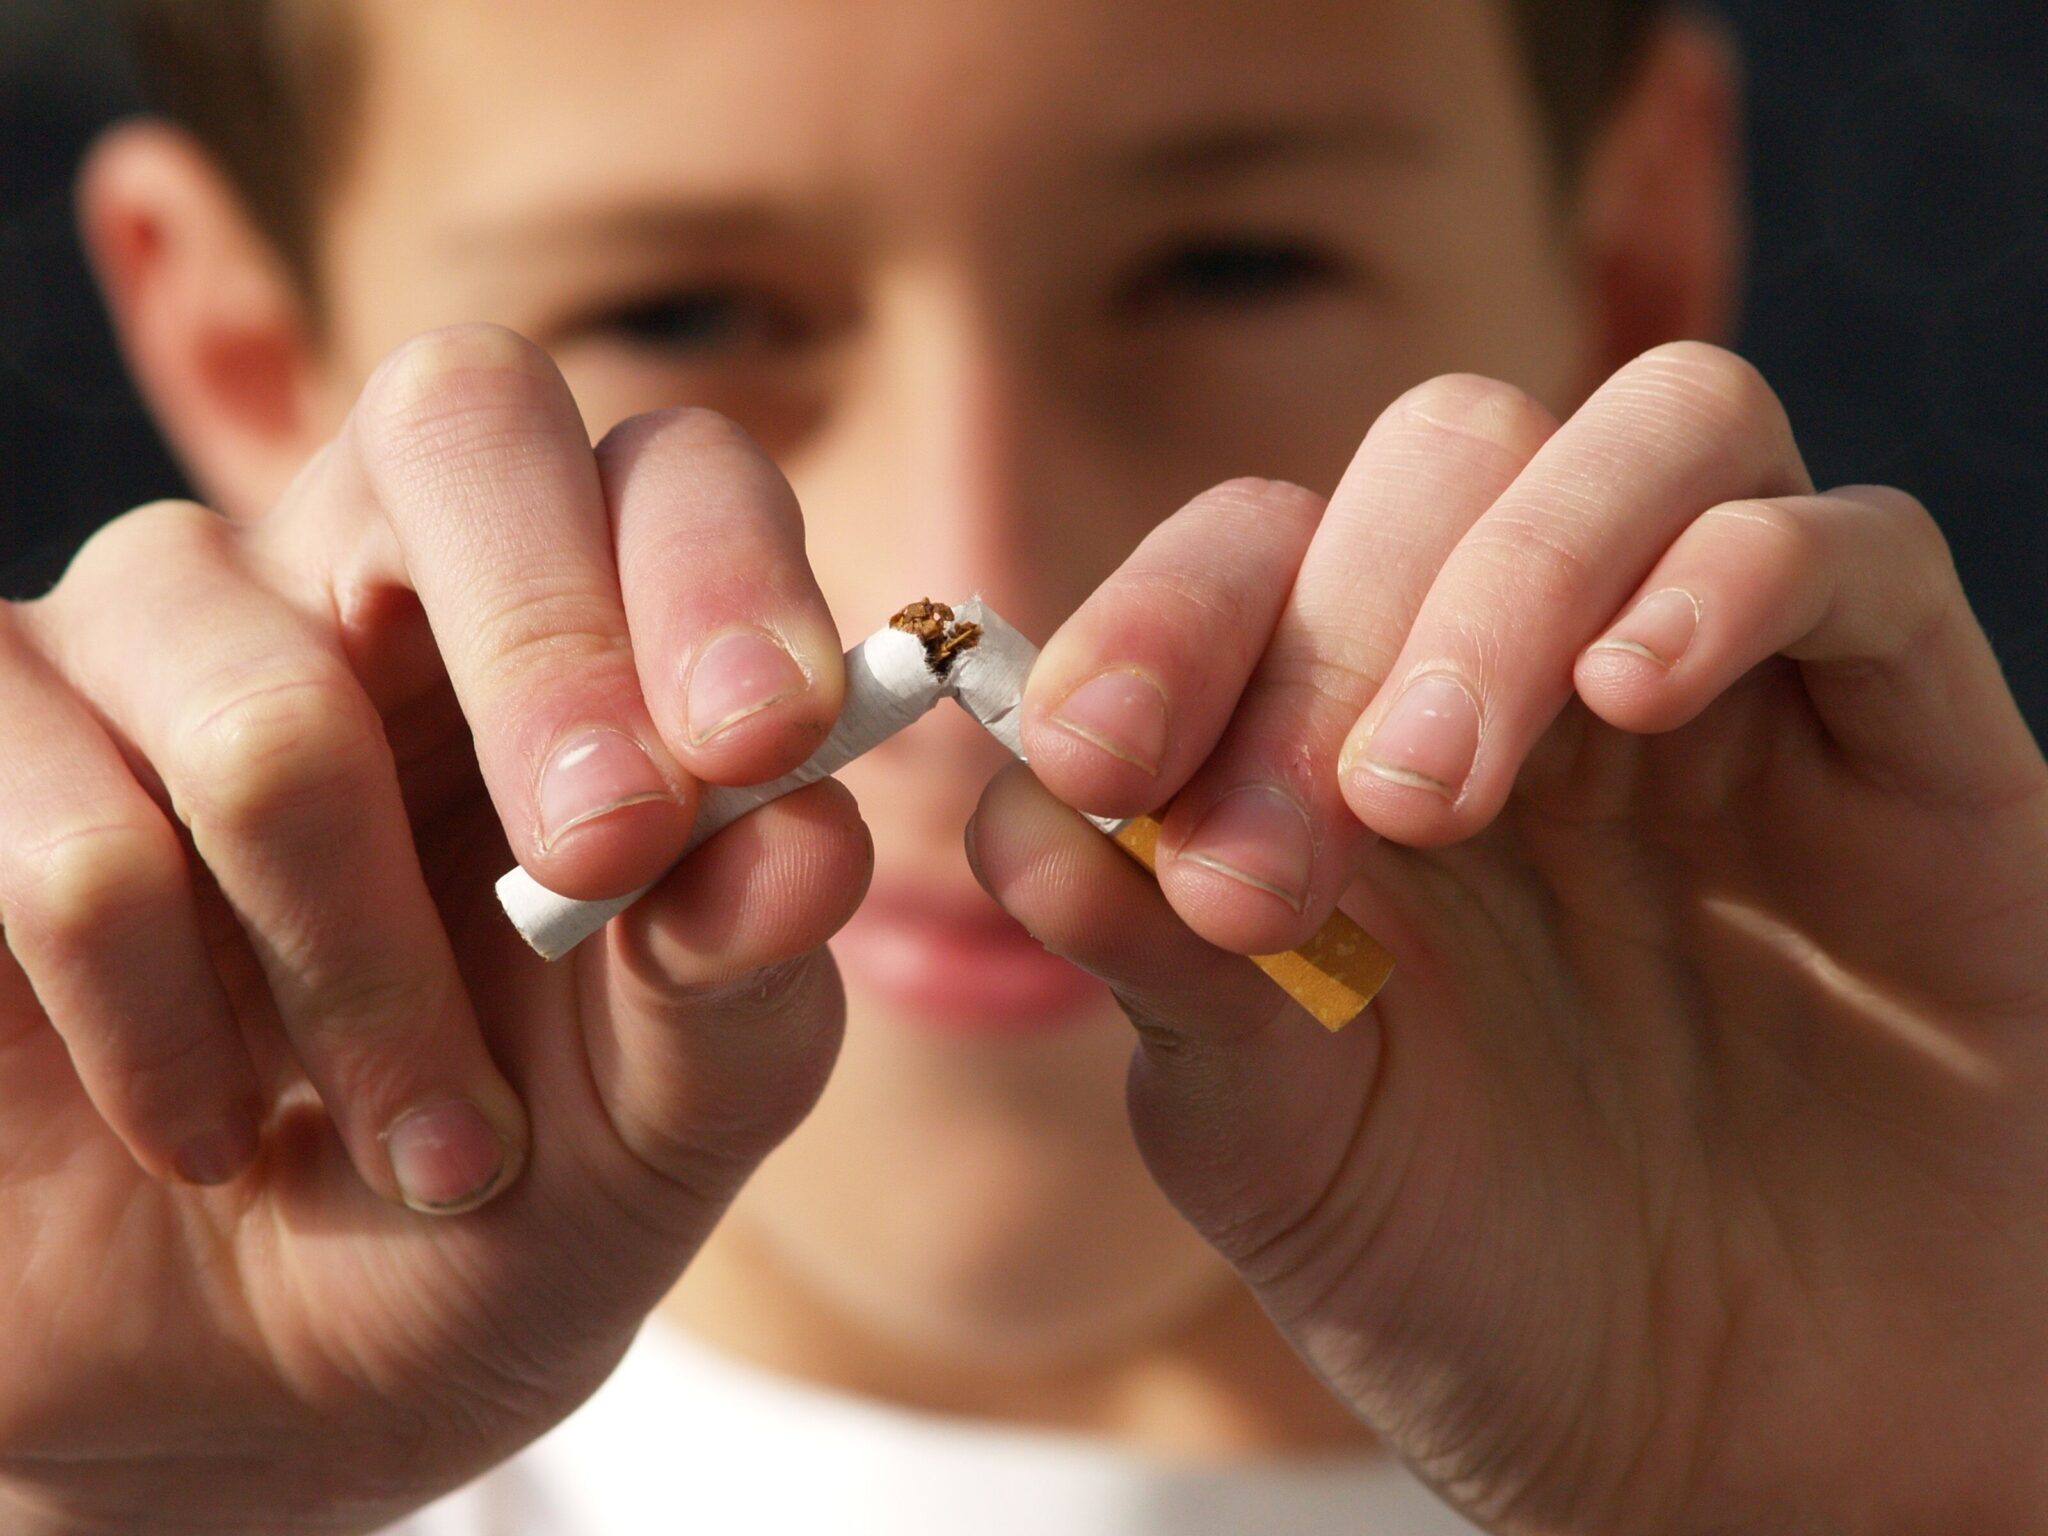 Tobacco & Your Teeth: The Risks of Chewing and Smoking